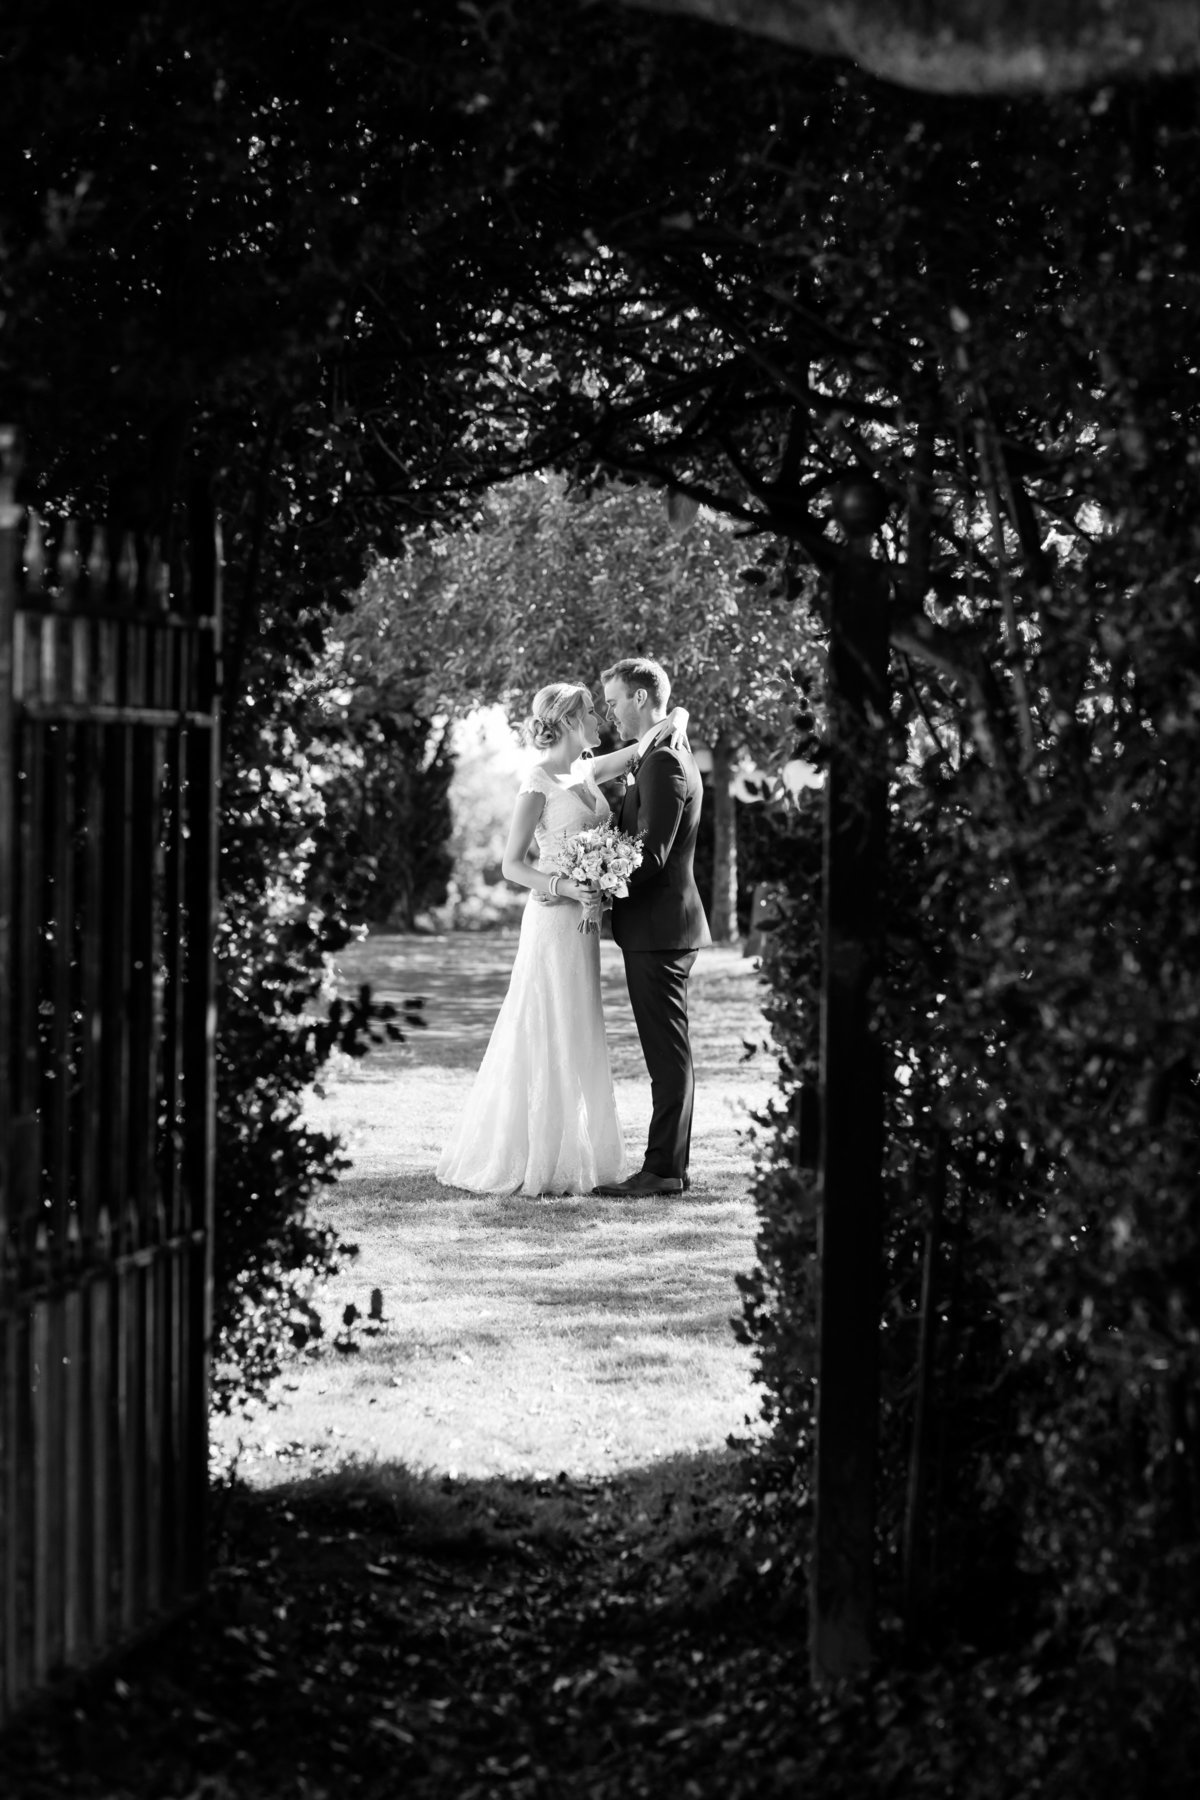 bridwell black and white wedding photo